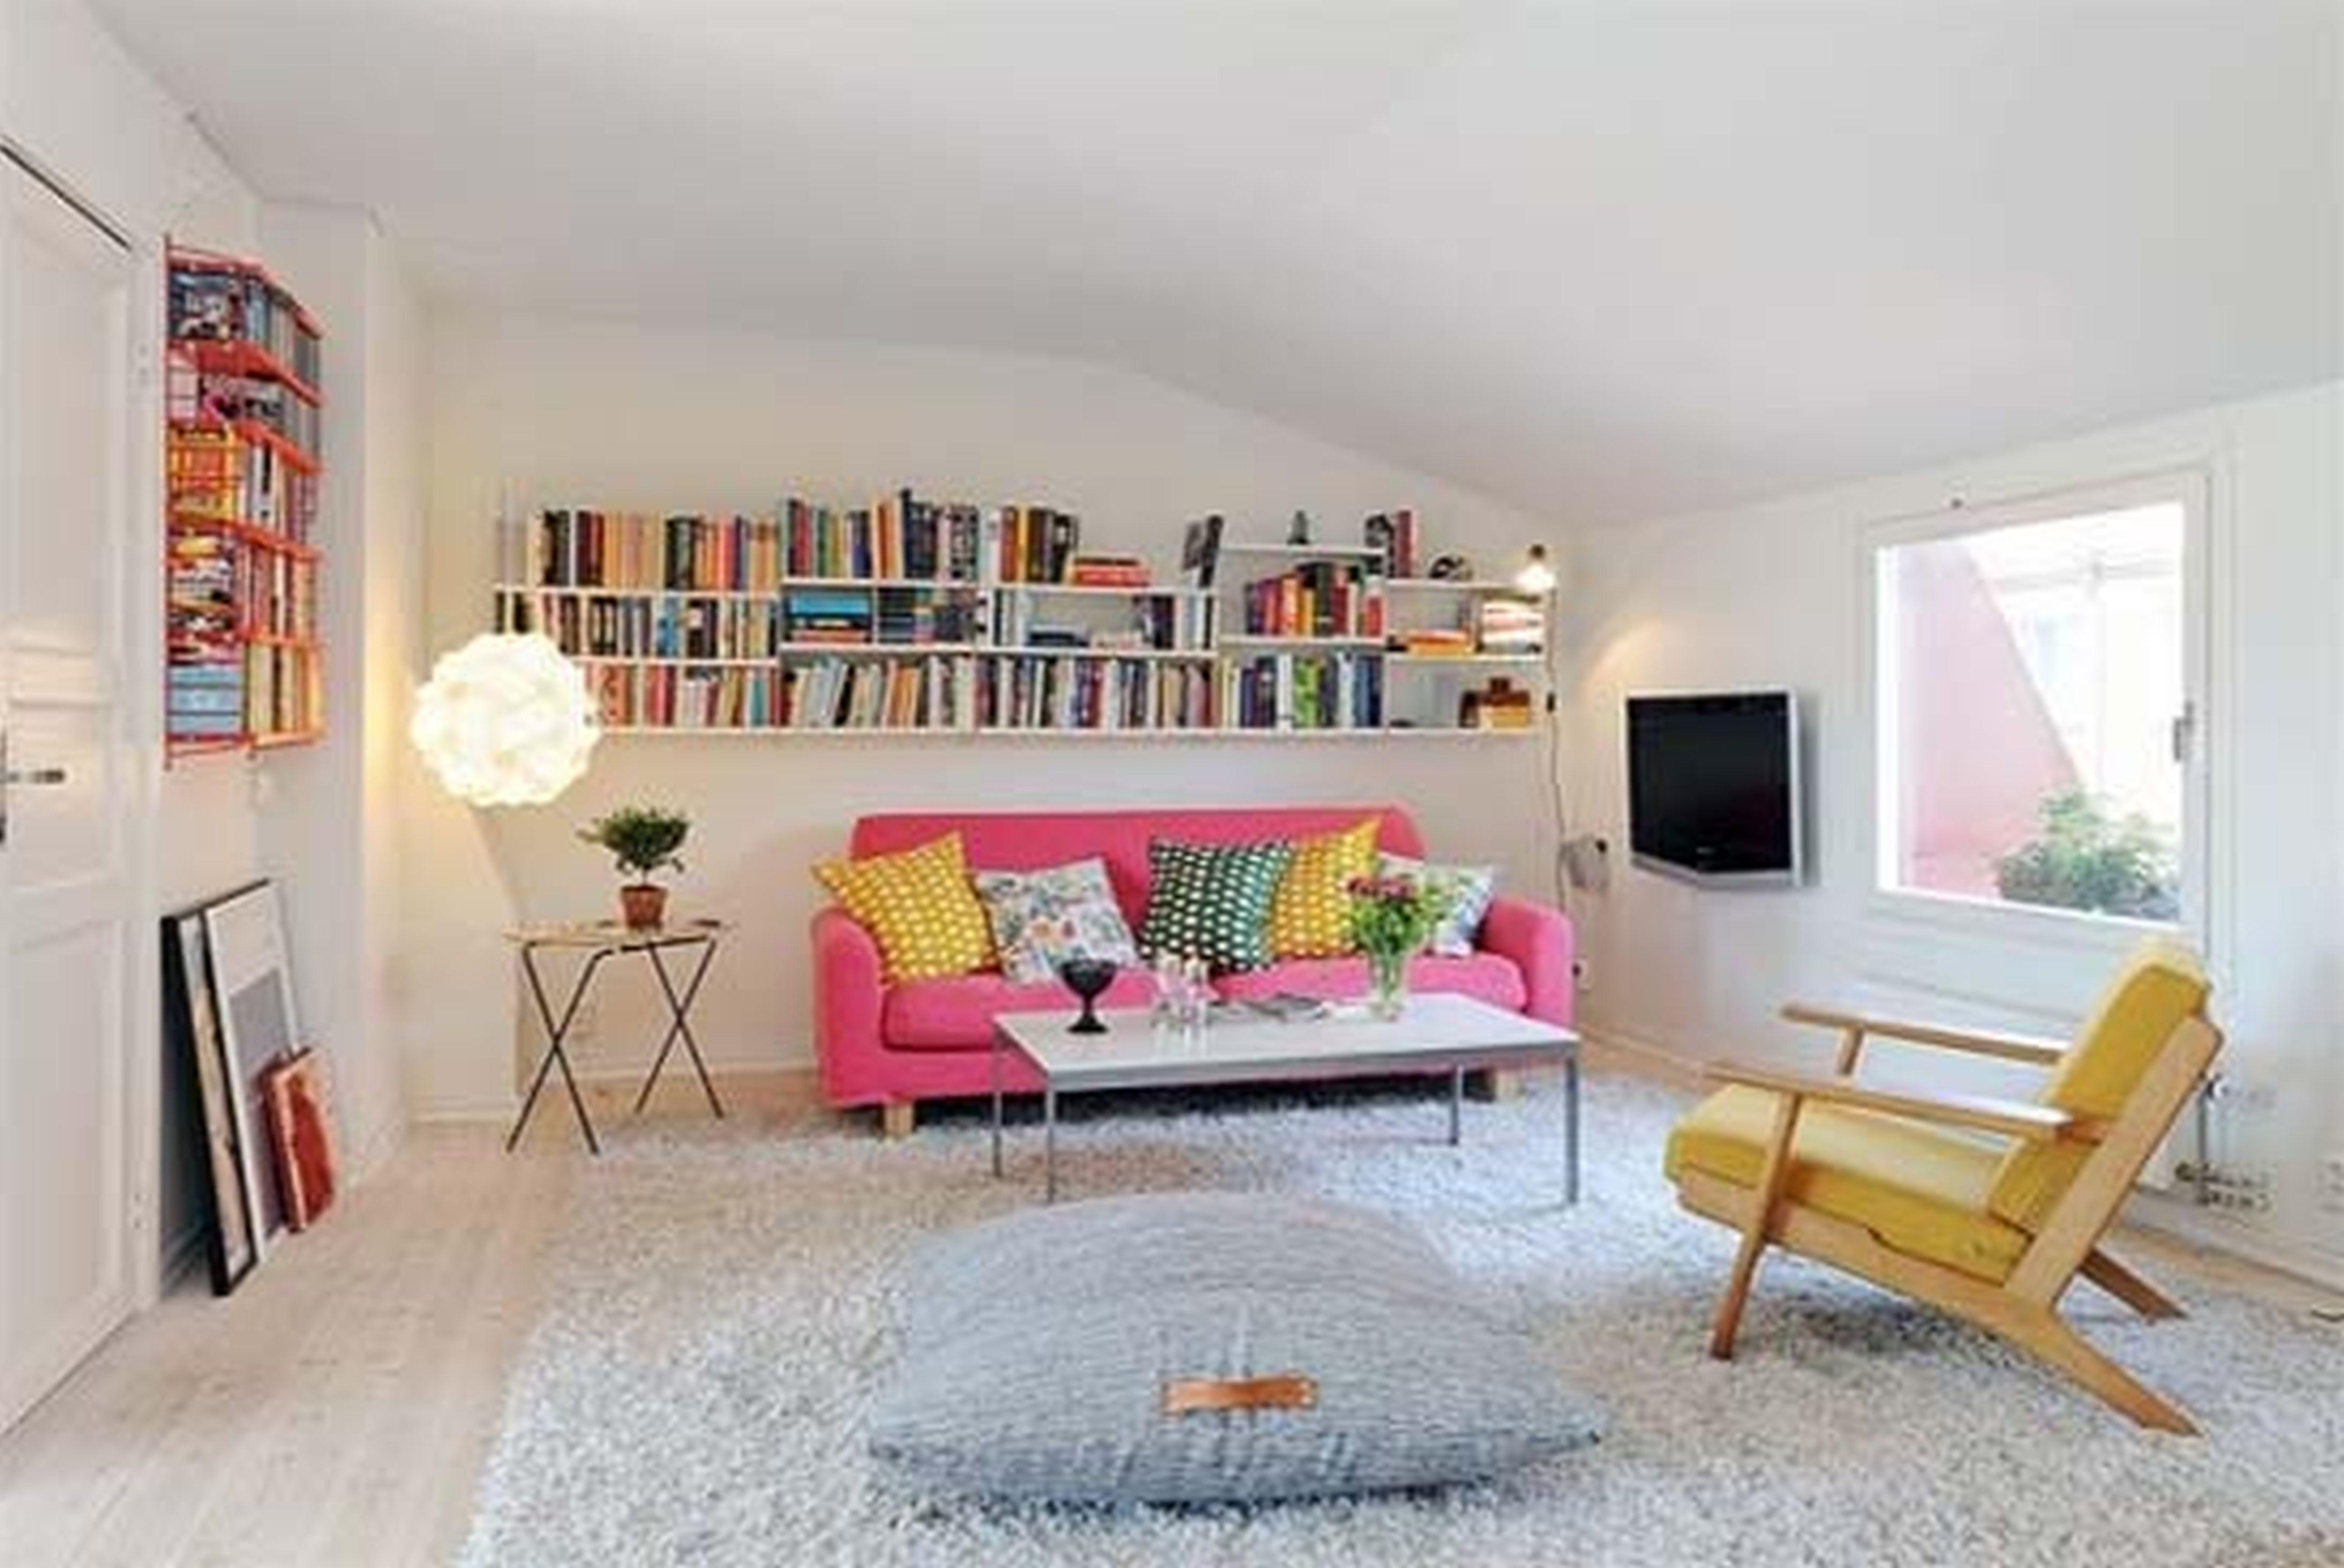 100 Cute Affordable Home Decor Share Your Favorite